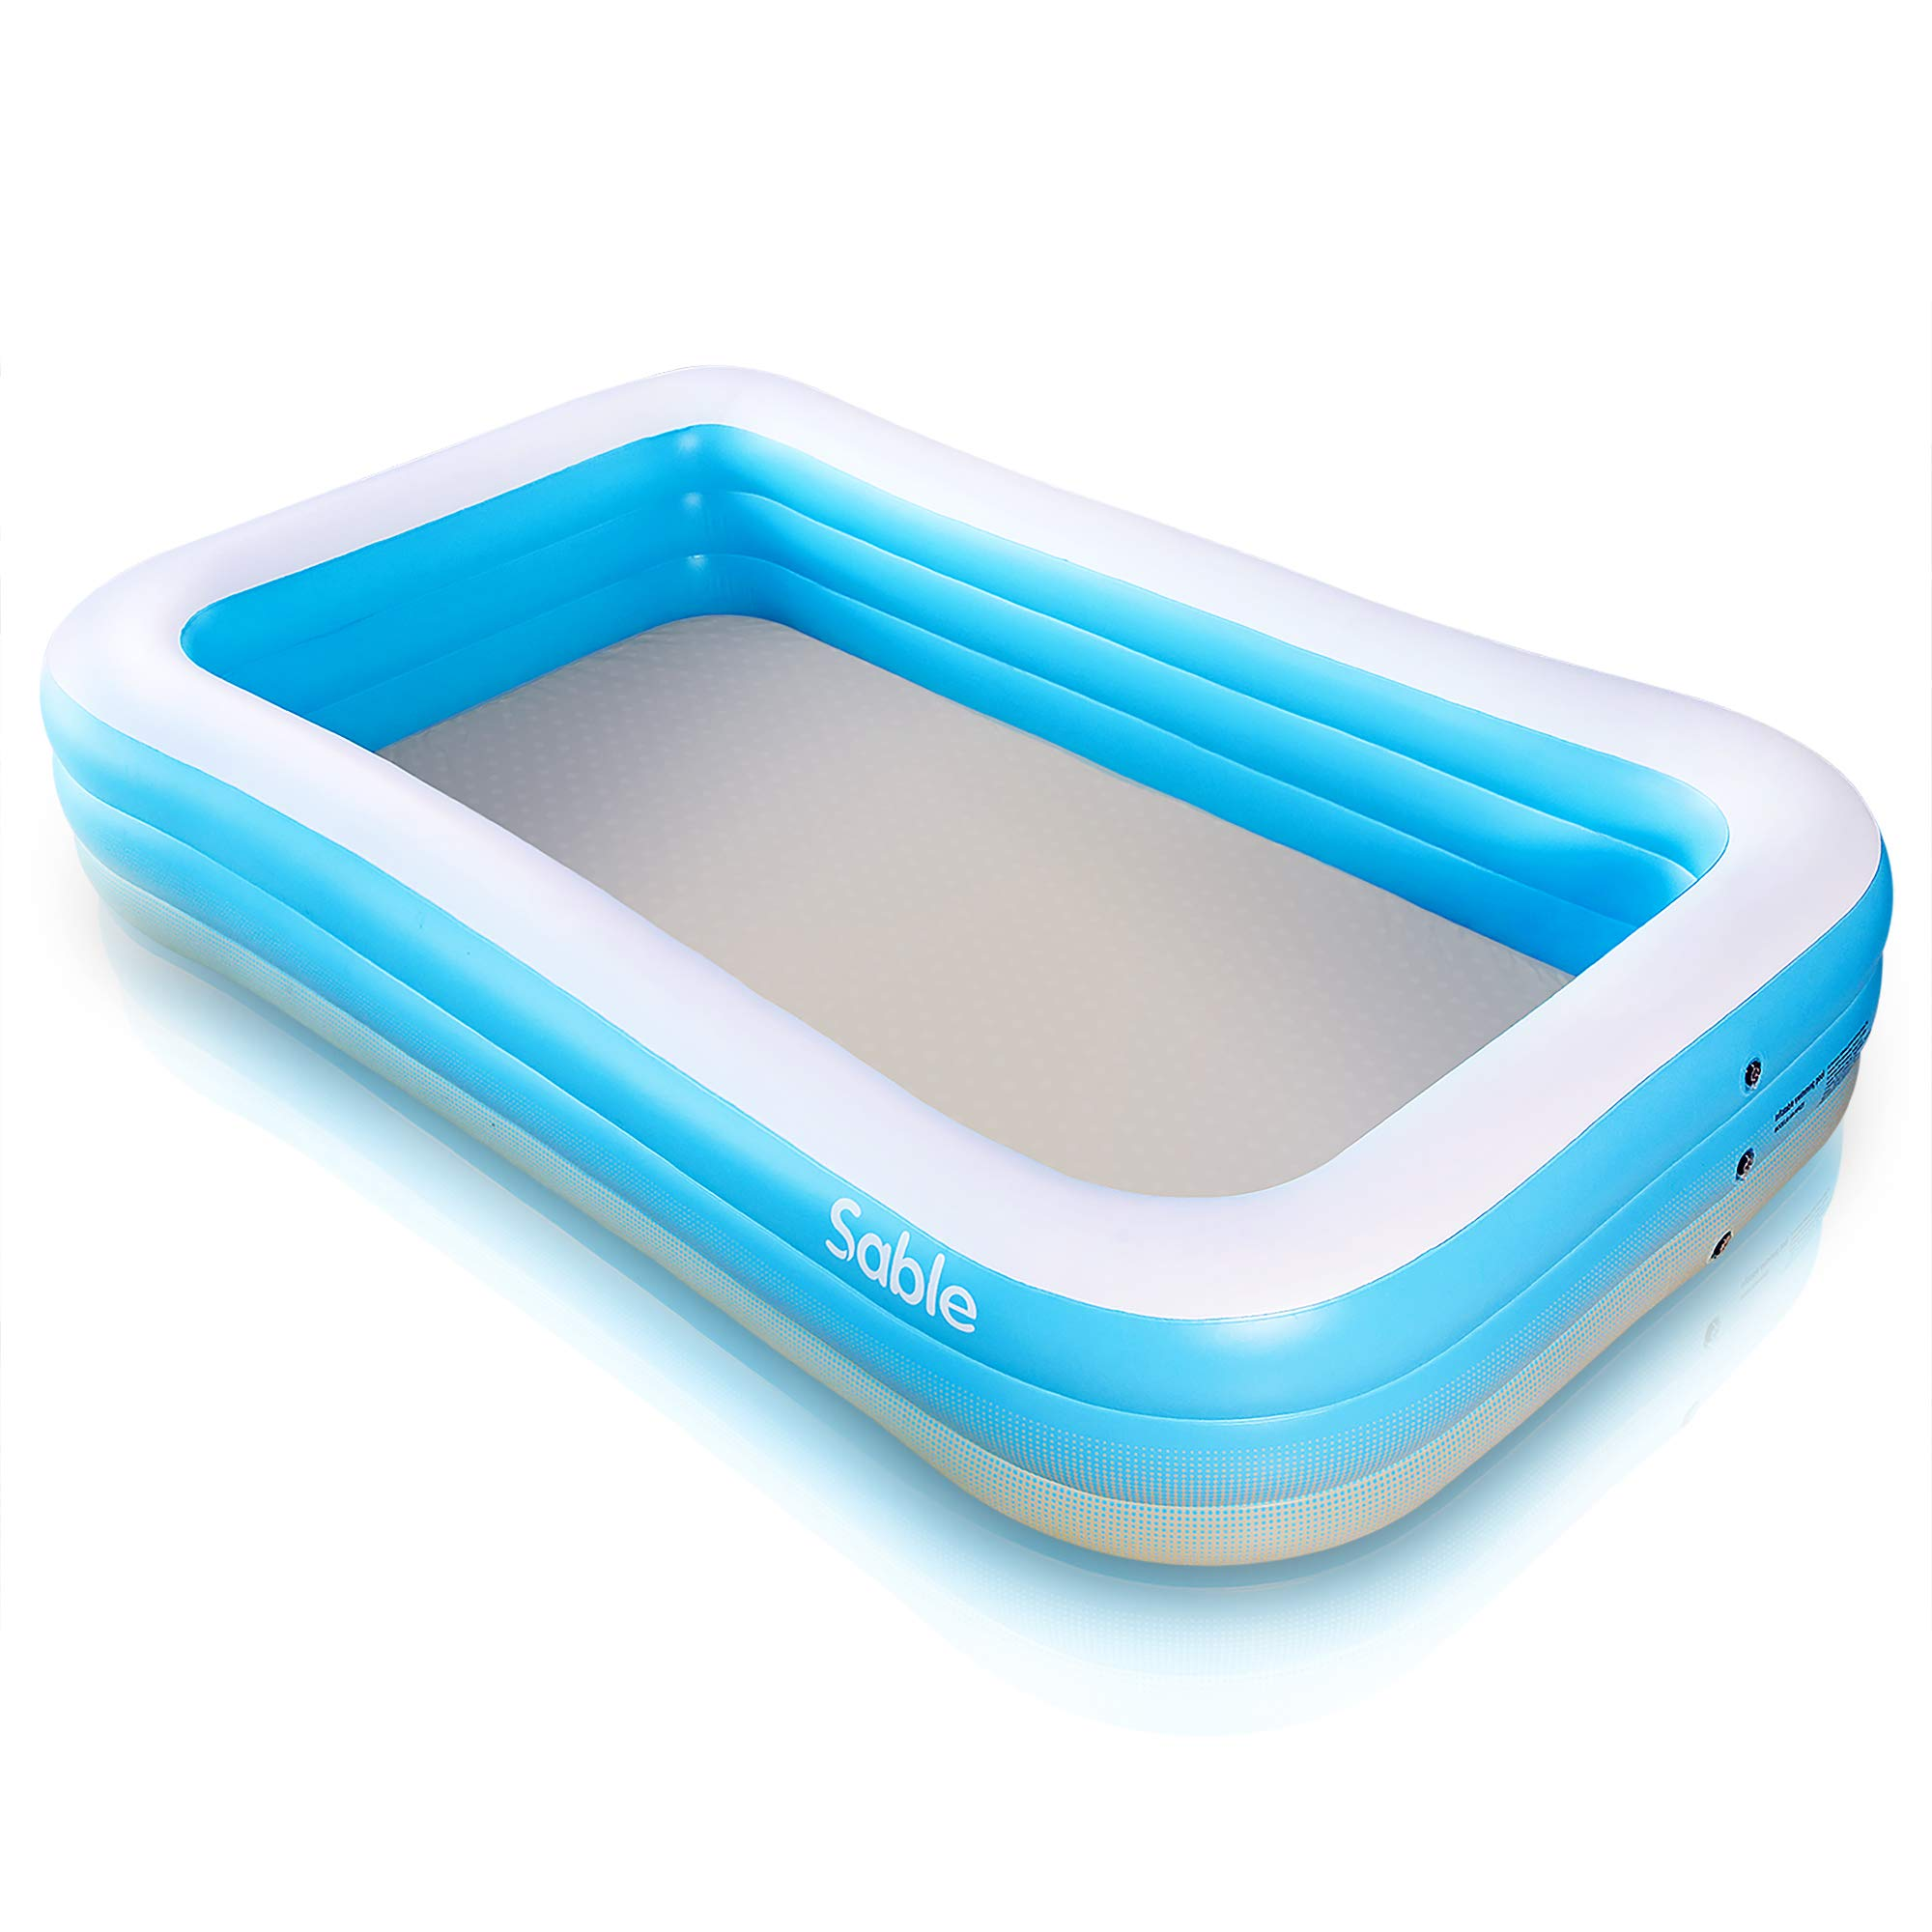 Inflatable Pool, Sable Swimming Pool for Baby, Kiddie, Kids, Adult, Infant, Toddler, 118'' X 72'' X 20'', for Ages 3+ by Sable